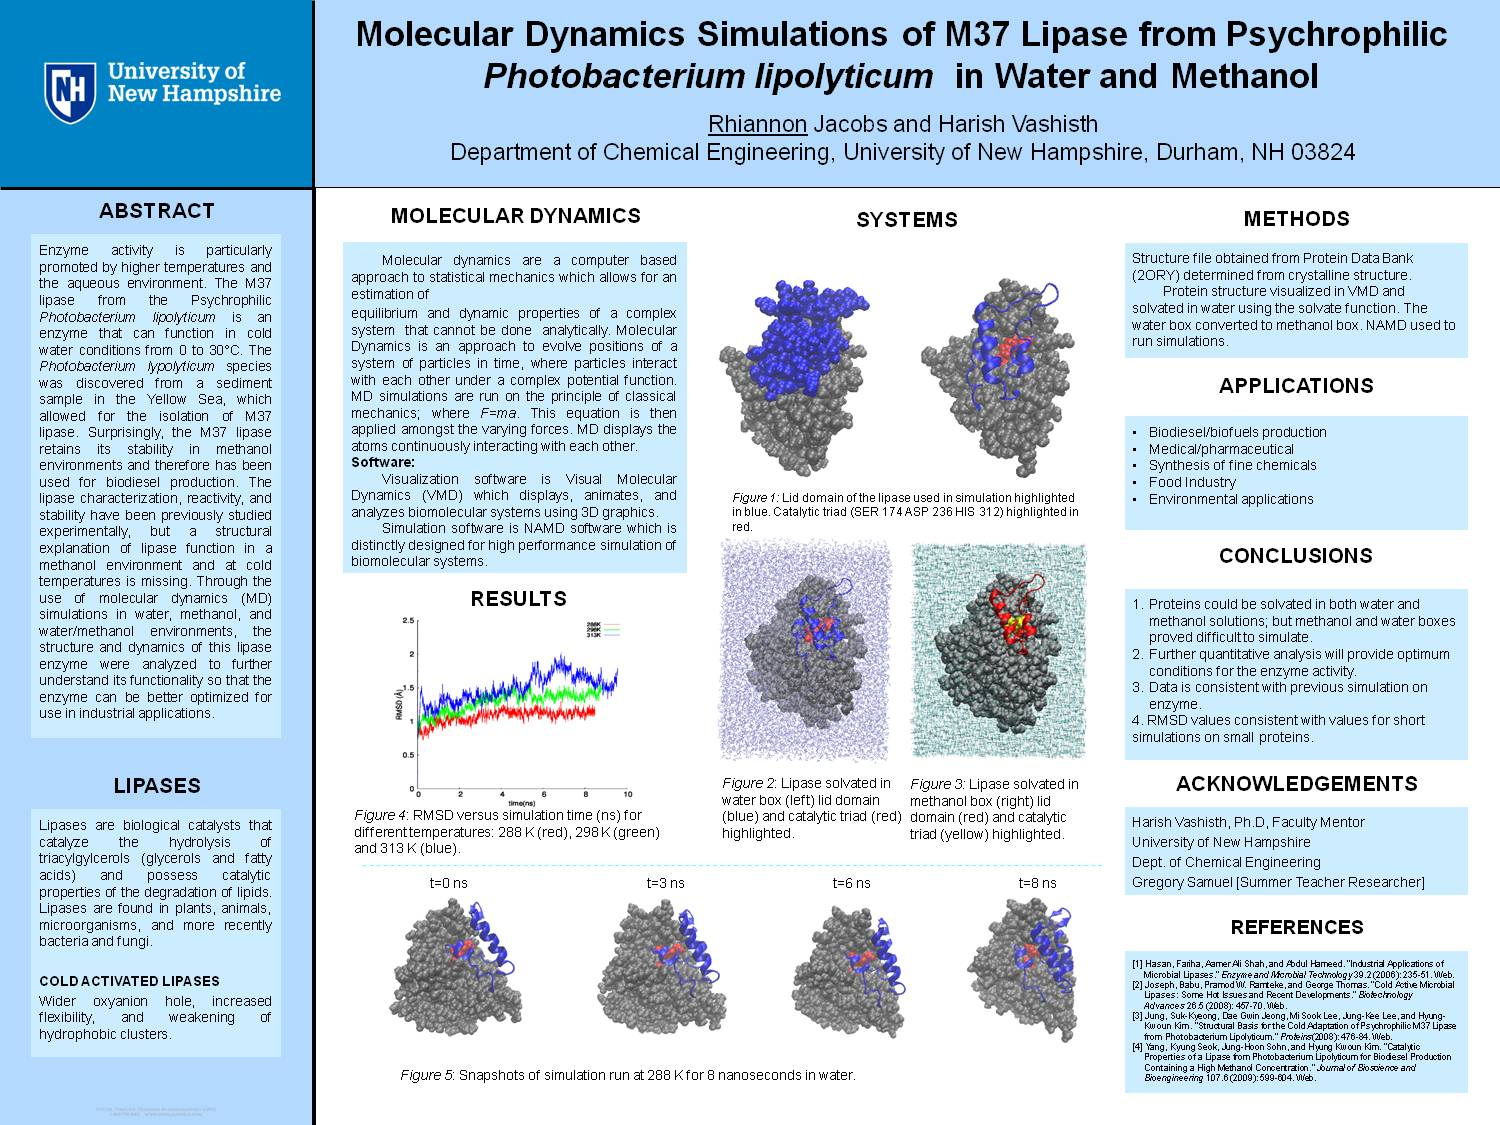 Molecular Dynamics Simulations Of M37 Lipase From Psychrophilic Photobacterium Lipolyticum  In Water And Methanol by rlk58